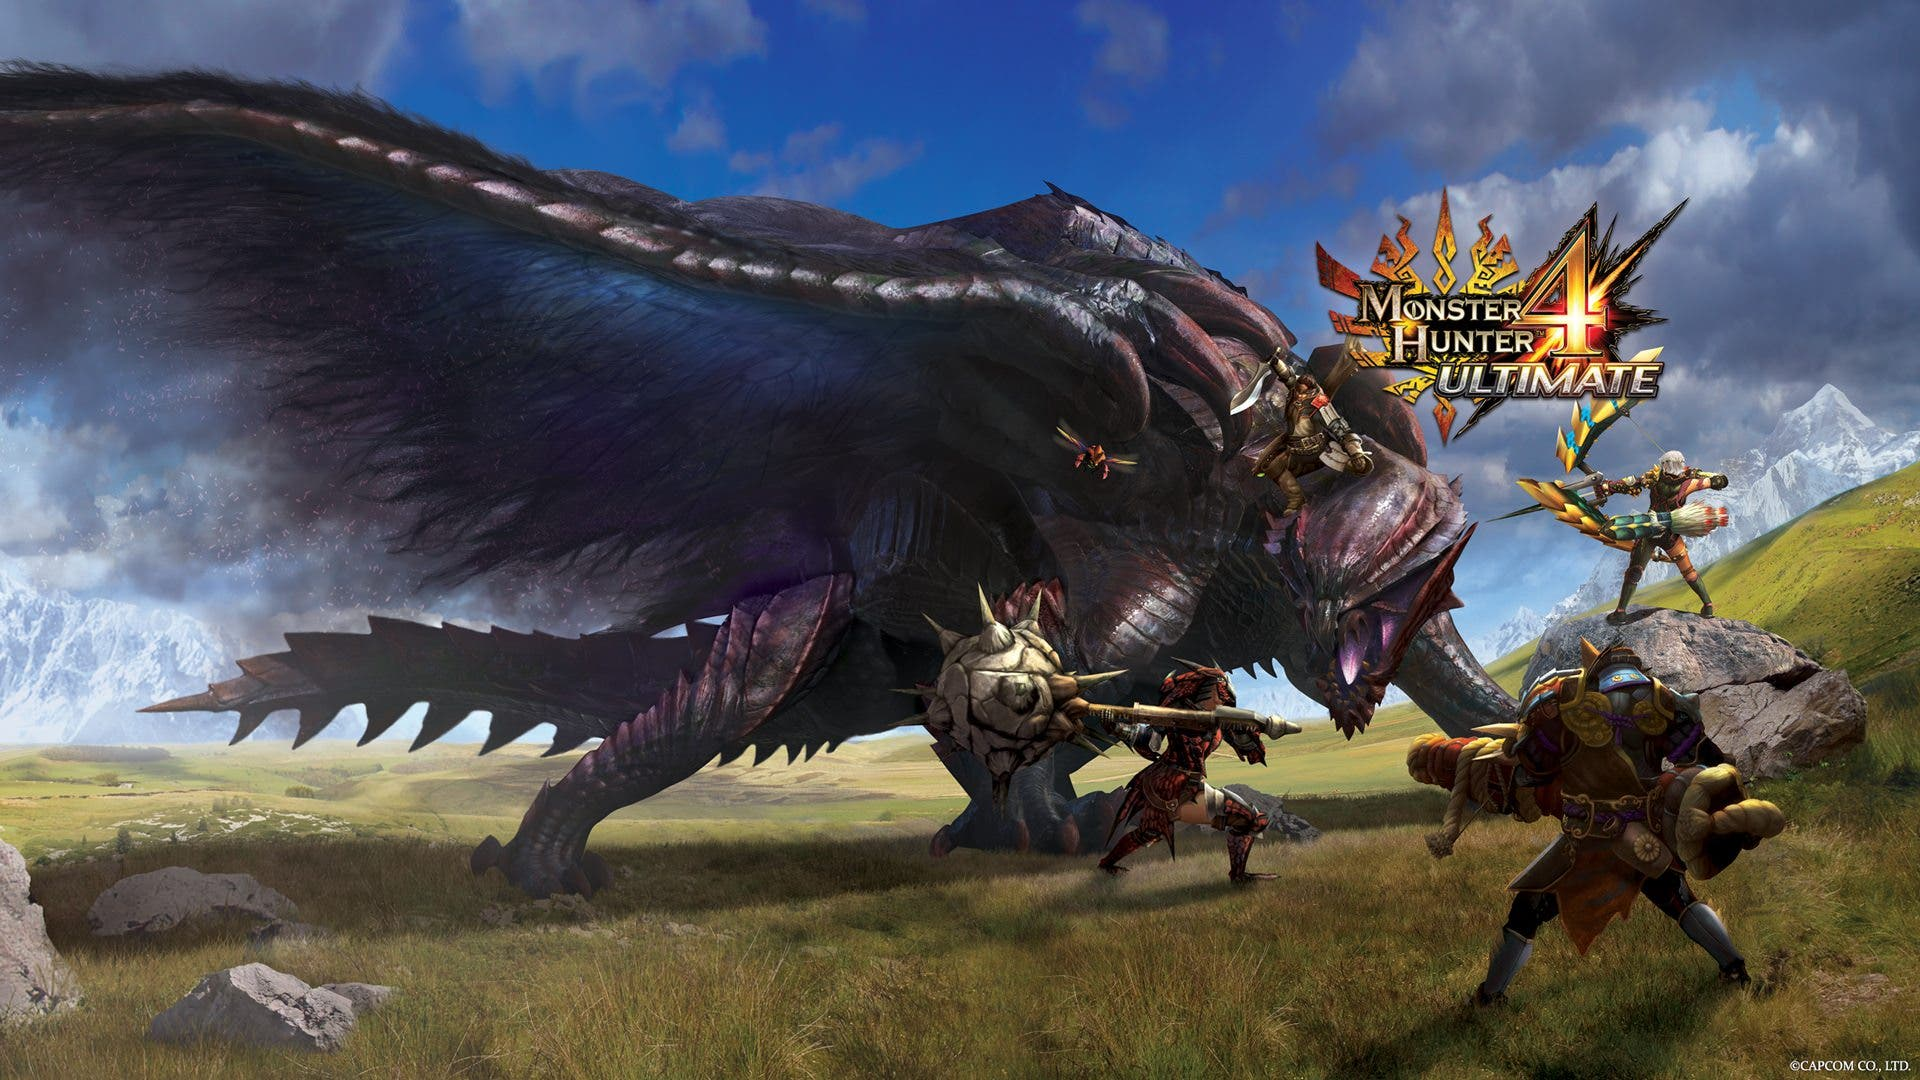 [Impresiones] 'Monster Hunter 4 Ultimate' para Nintendo 3DS